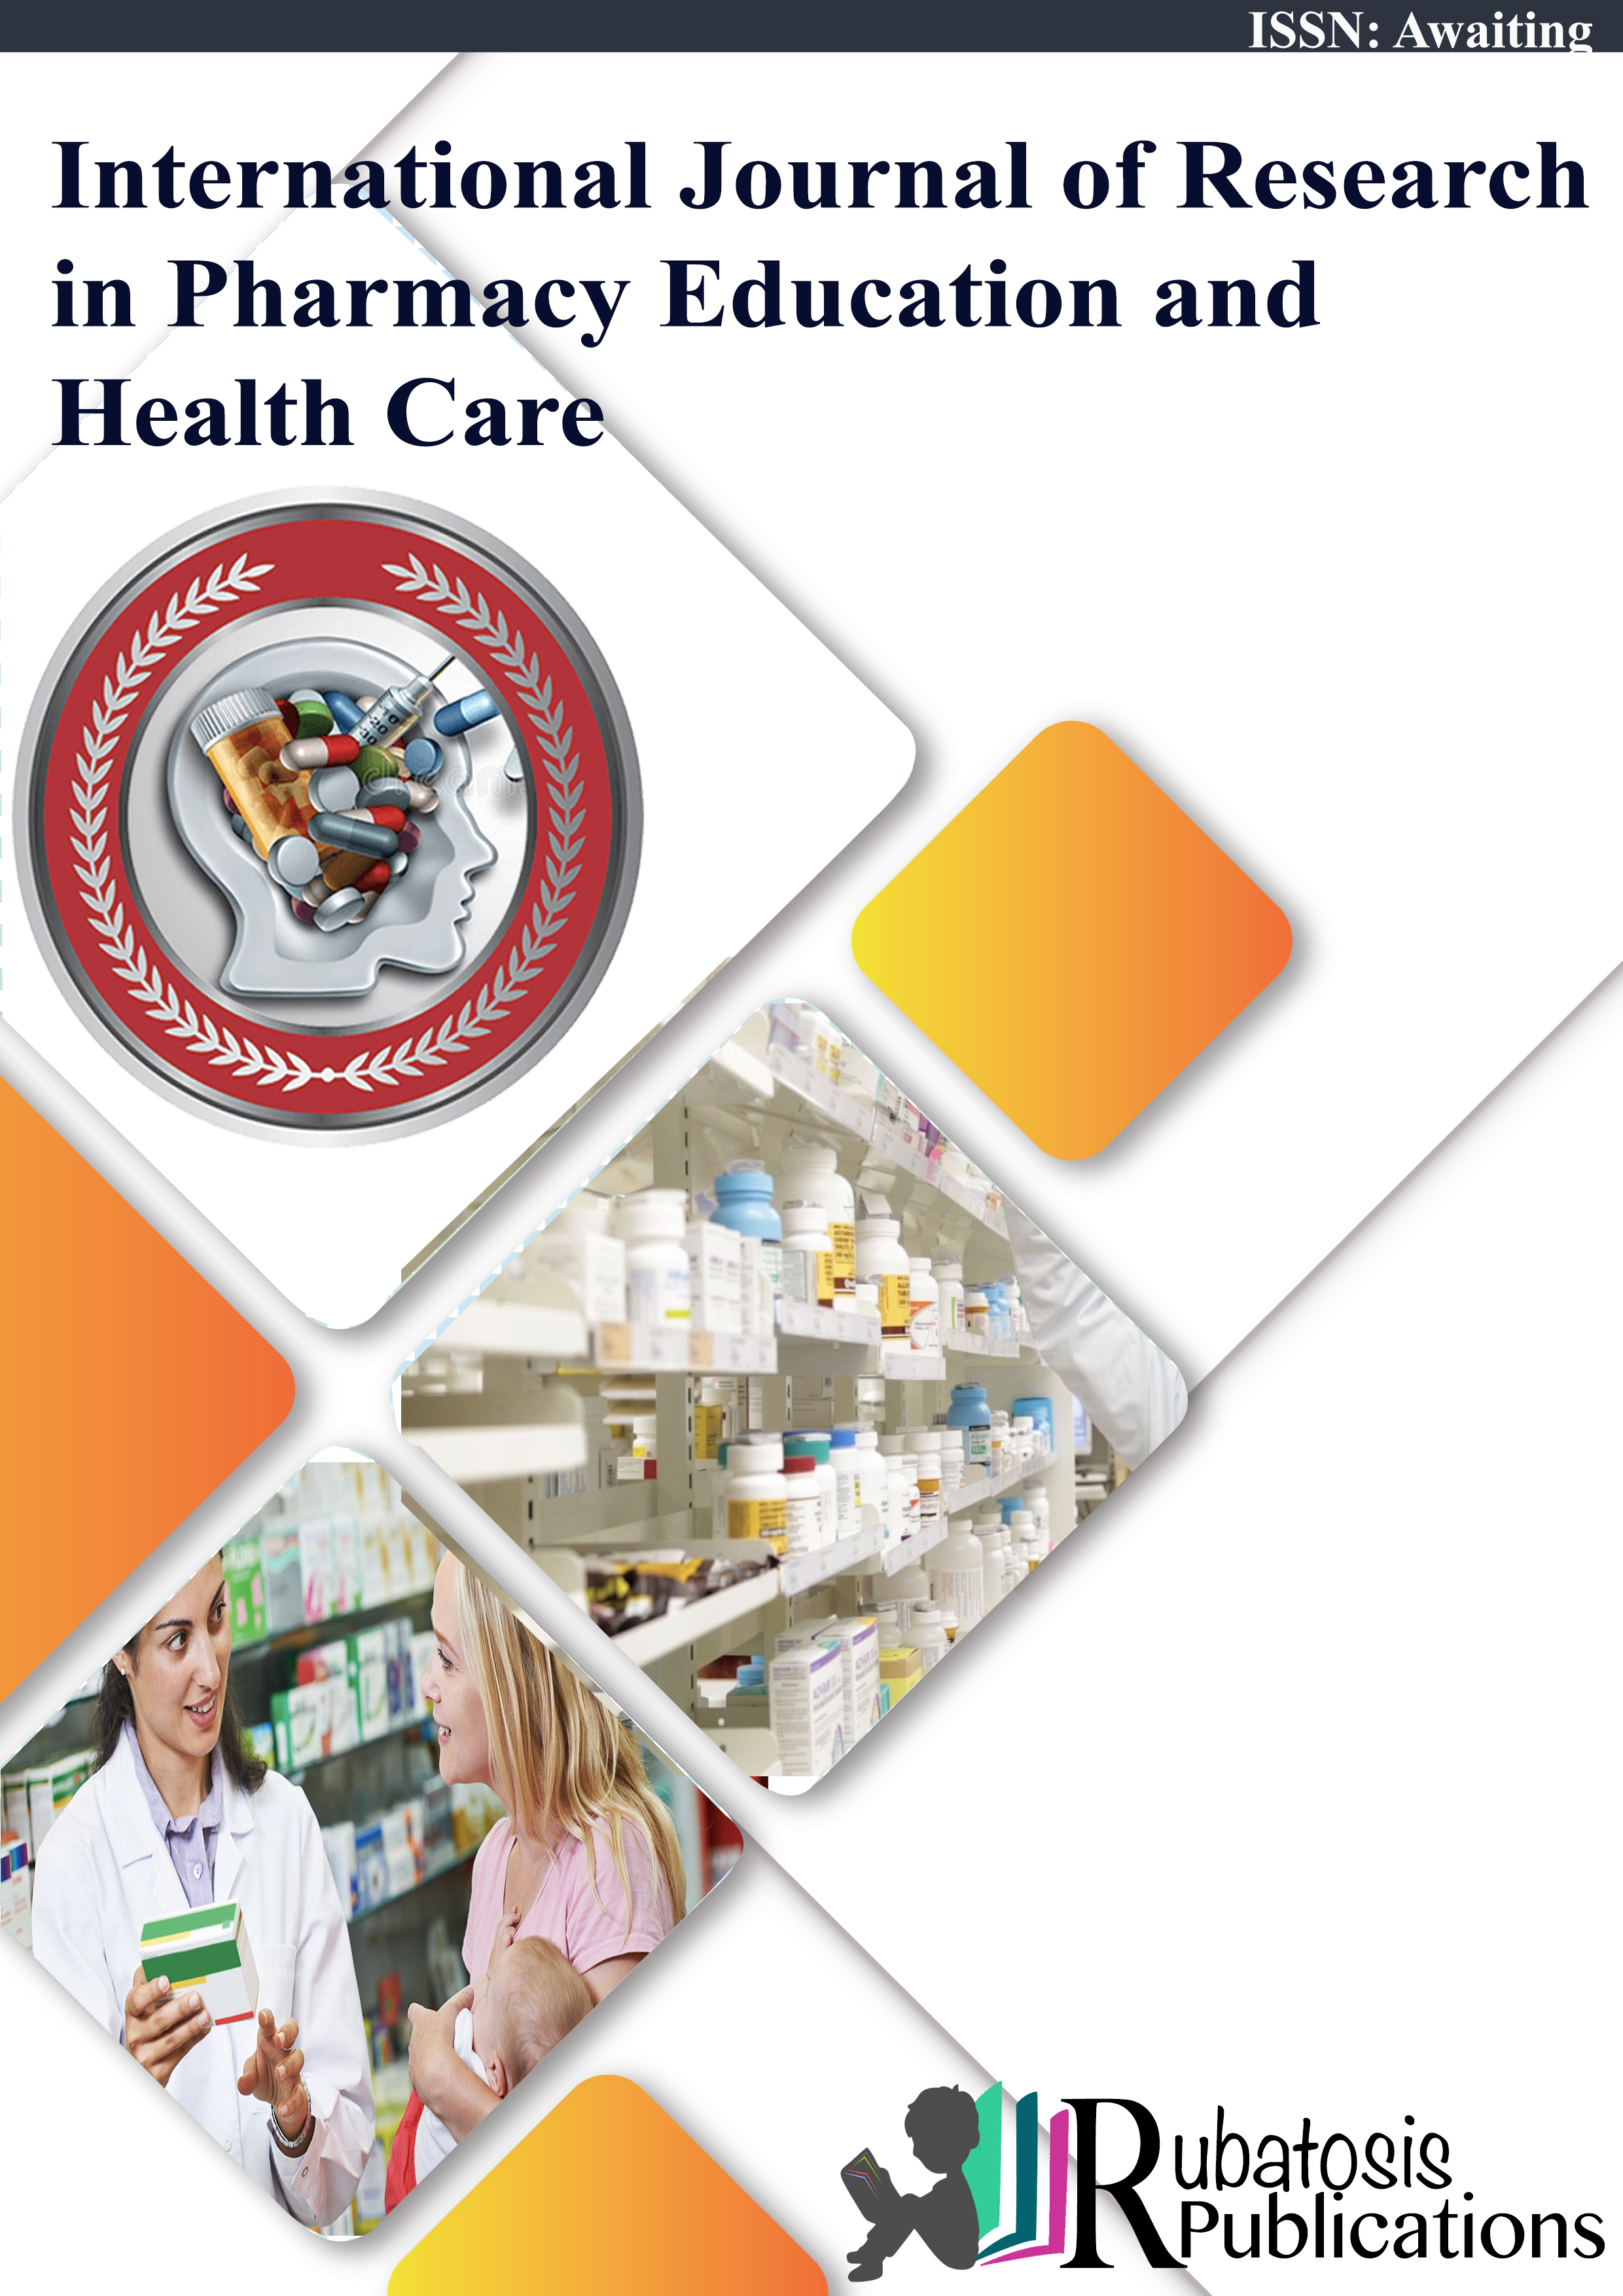 International Journal of Research in Pharmacy Education and Health Care